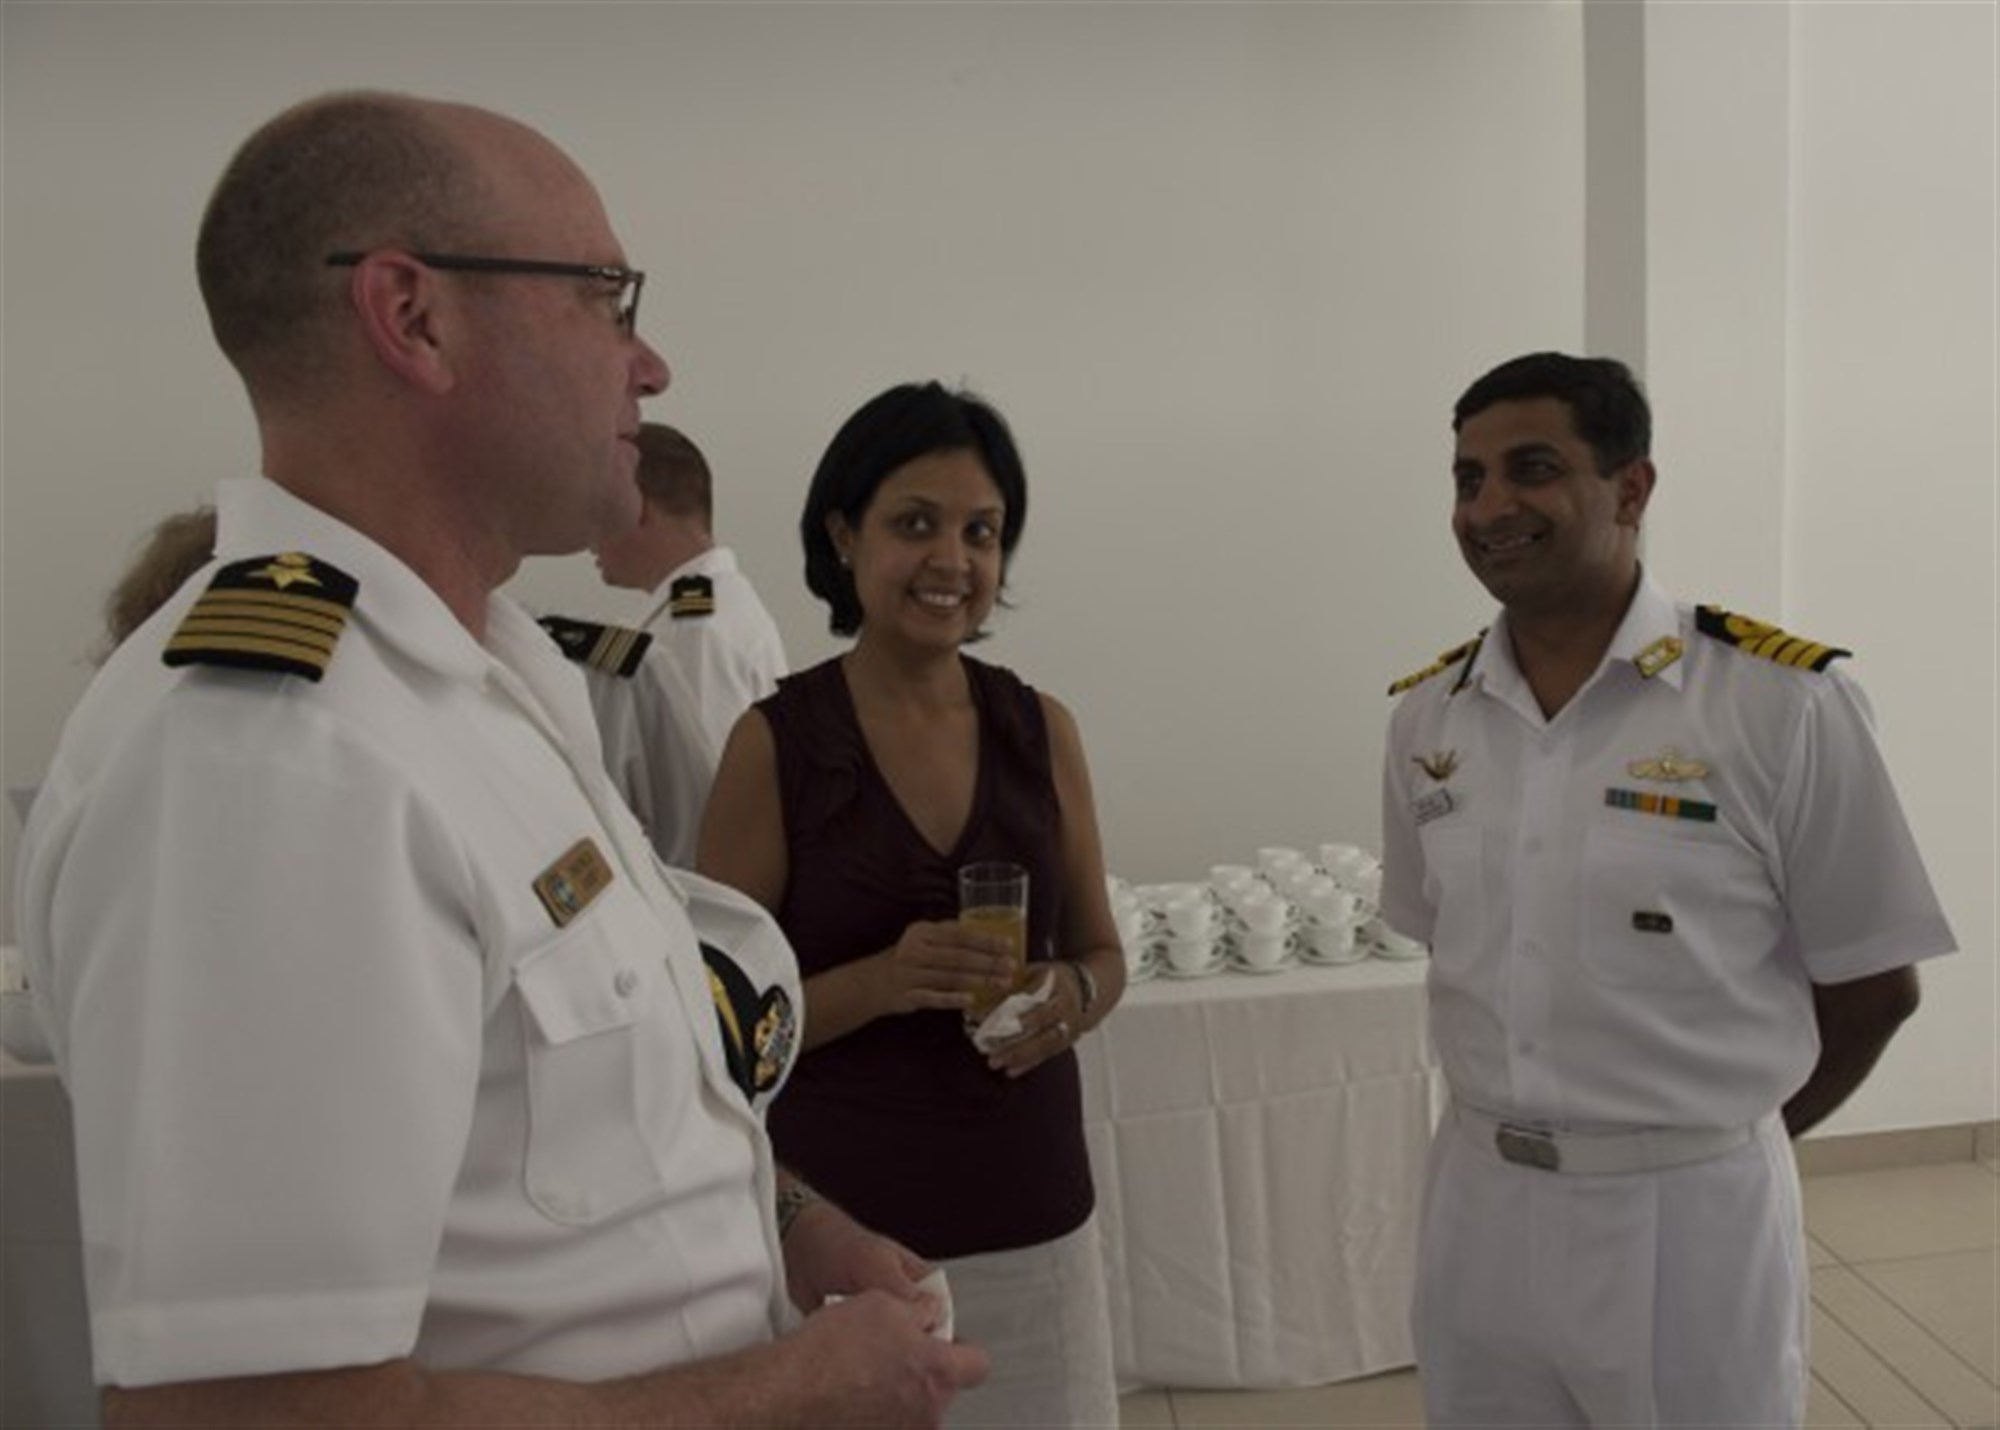 LE CHALAND, Mauritius (Jan. 28, 2015) U.S. Navy Capt. Patrick Carey, exercise director of Exercise Cutlass Express 2015, interacts with other attendees after the opening ceremony of the annual exercise Jan. 28, 2015. Exercise Cutlass Express 2015, sponsored by U.S. Africa Command, is designed to improve regional cooperation, maritime domain awareness, and information sharing practices to increase capabilities of East African and Indian Ocean nations to counter sea-based illicit activity. (U.S. Navy photo by Mass Communication Specialist 1st Class David R. Krigbaum/Released)